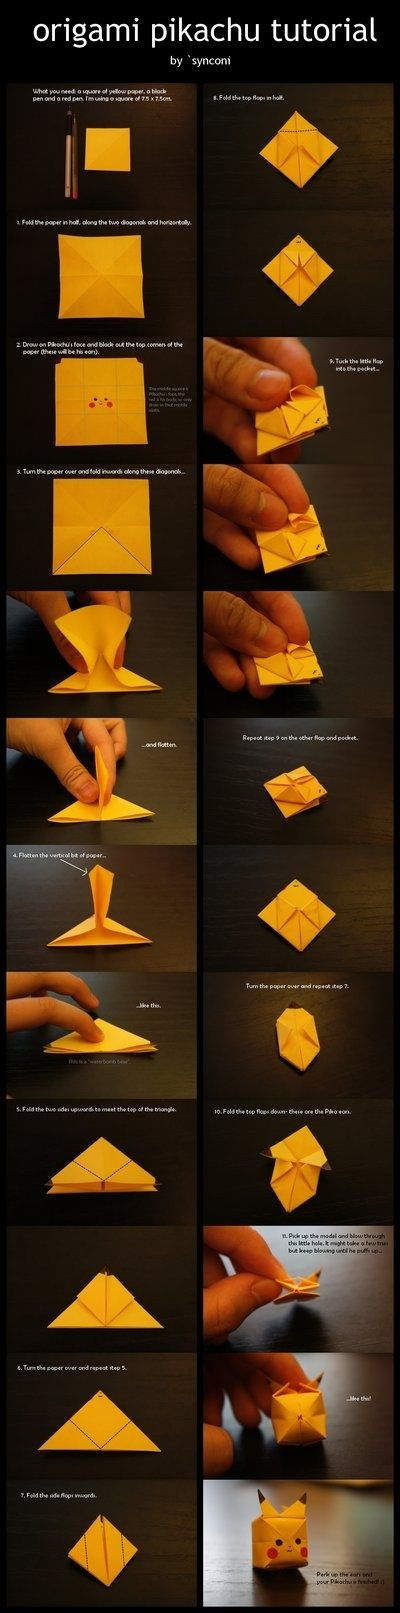 Pikachu origami! I have no origami skills whatsoever, but this looks too cute I might just have to give it a try!